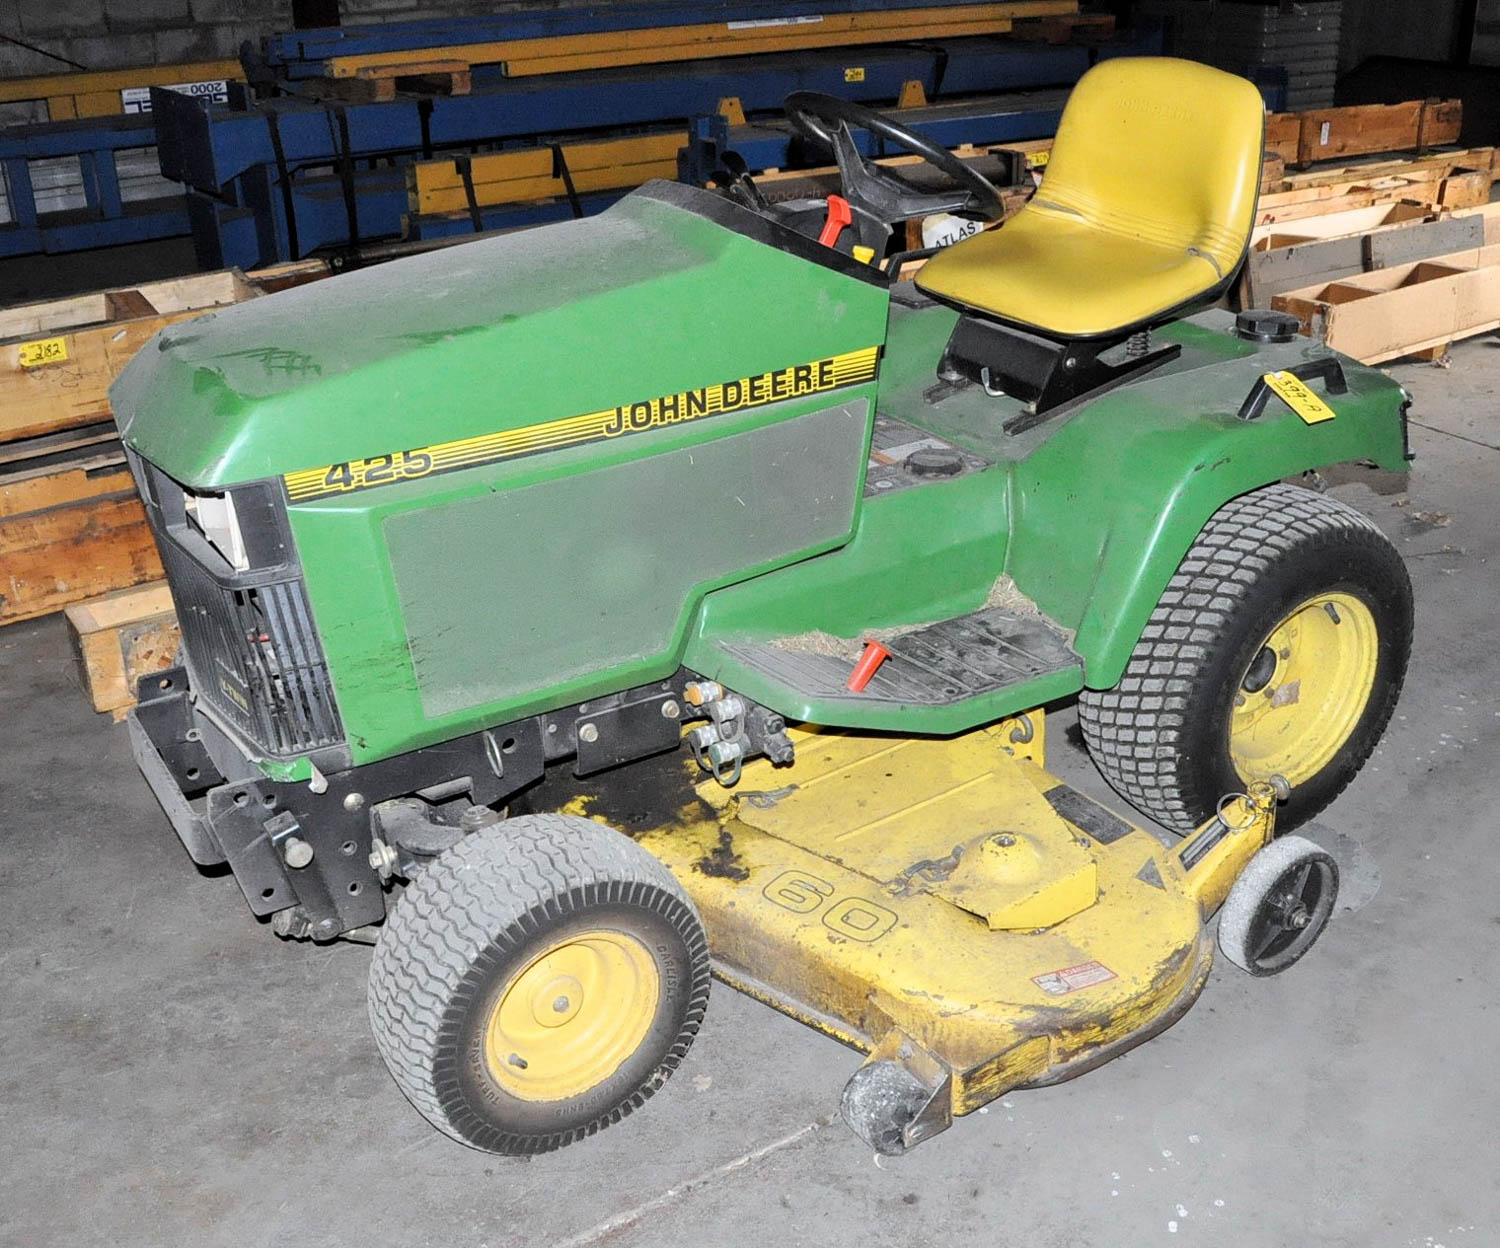 """Lot 399a - JOHN DEERE 425, GAS POWERED LAWN TRACTOR WITH 60"""" MOWING DECK, (OUTBUILDING-TIFFIN)"""